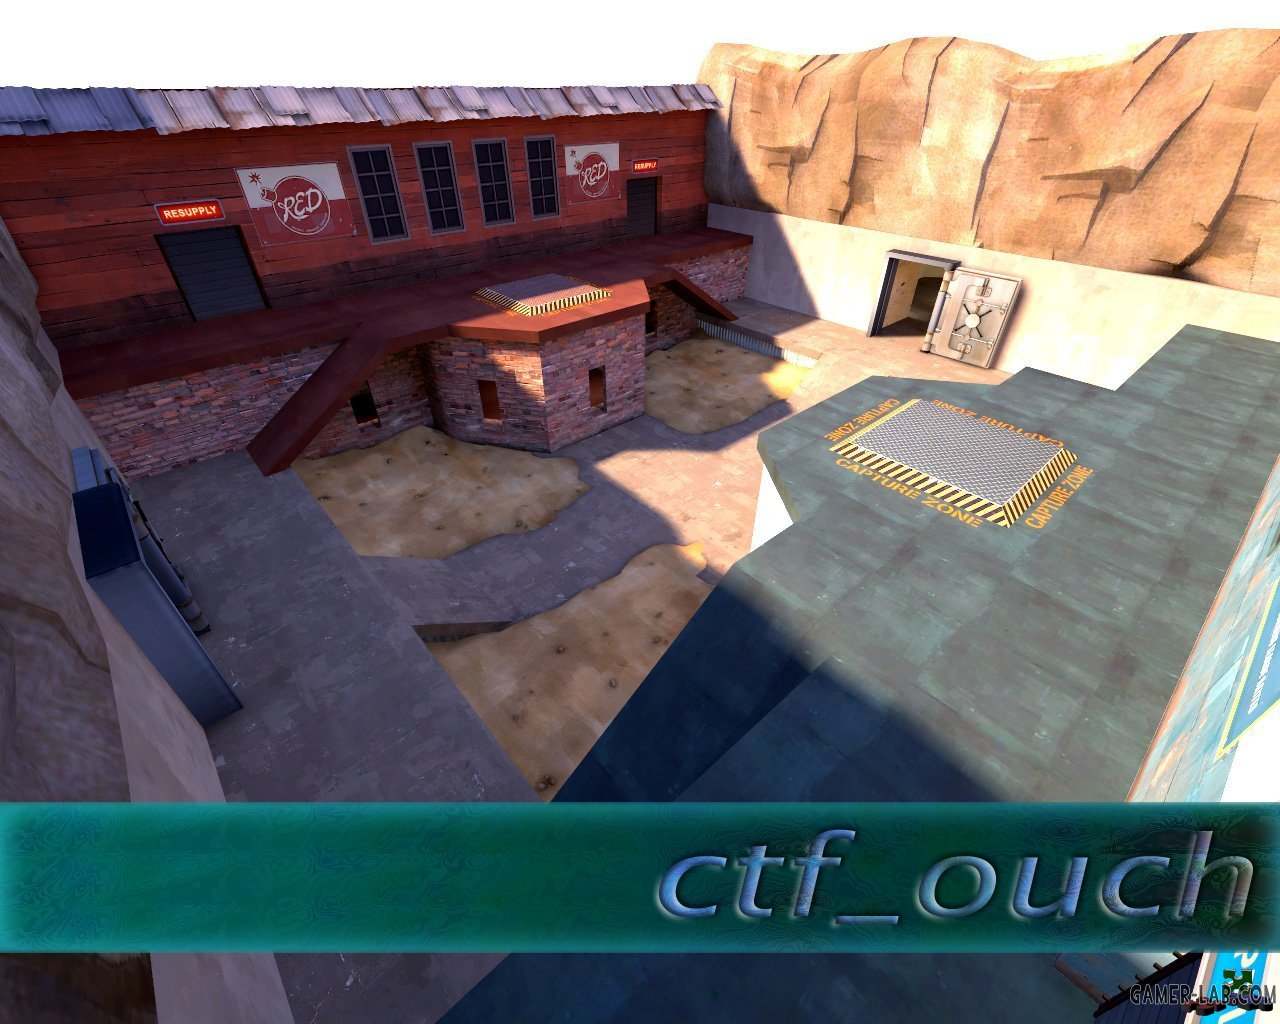 ctf_ouch_final